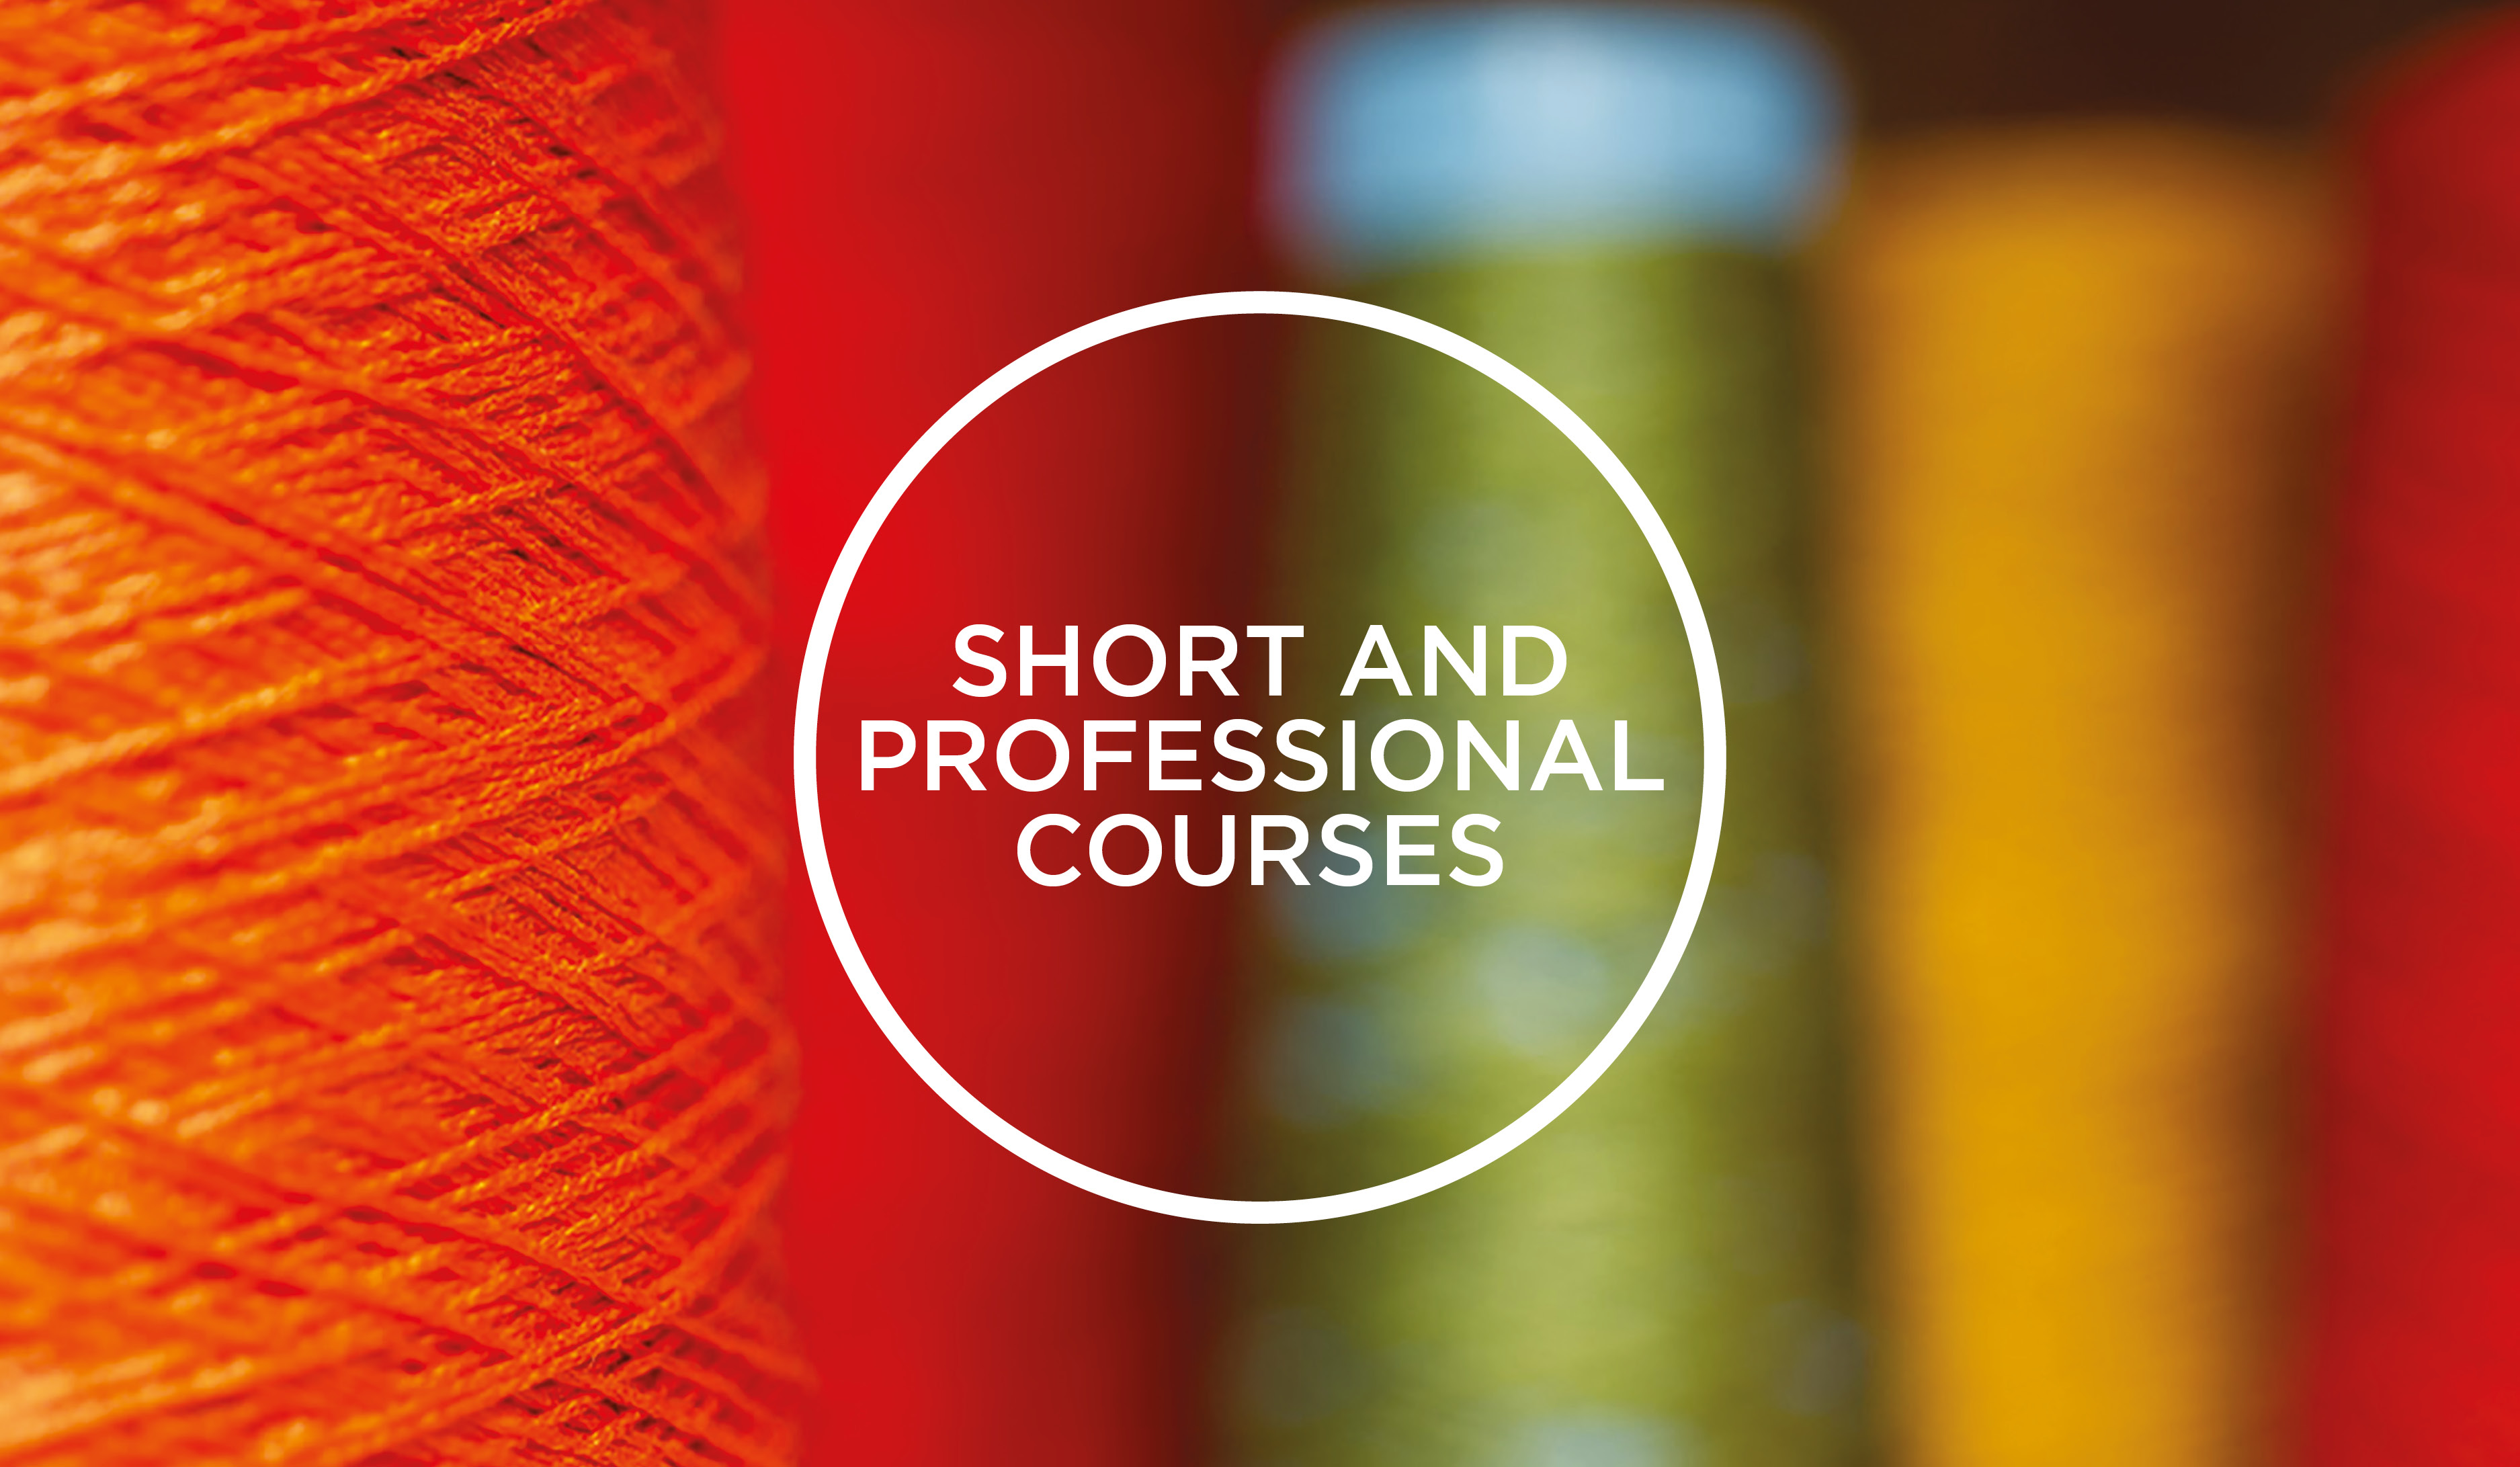 Short and Professional Courses brochure image